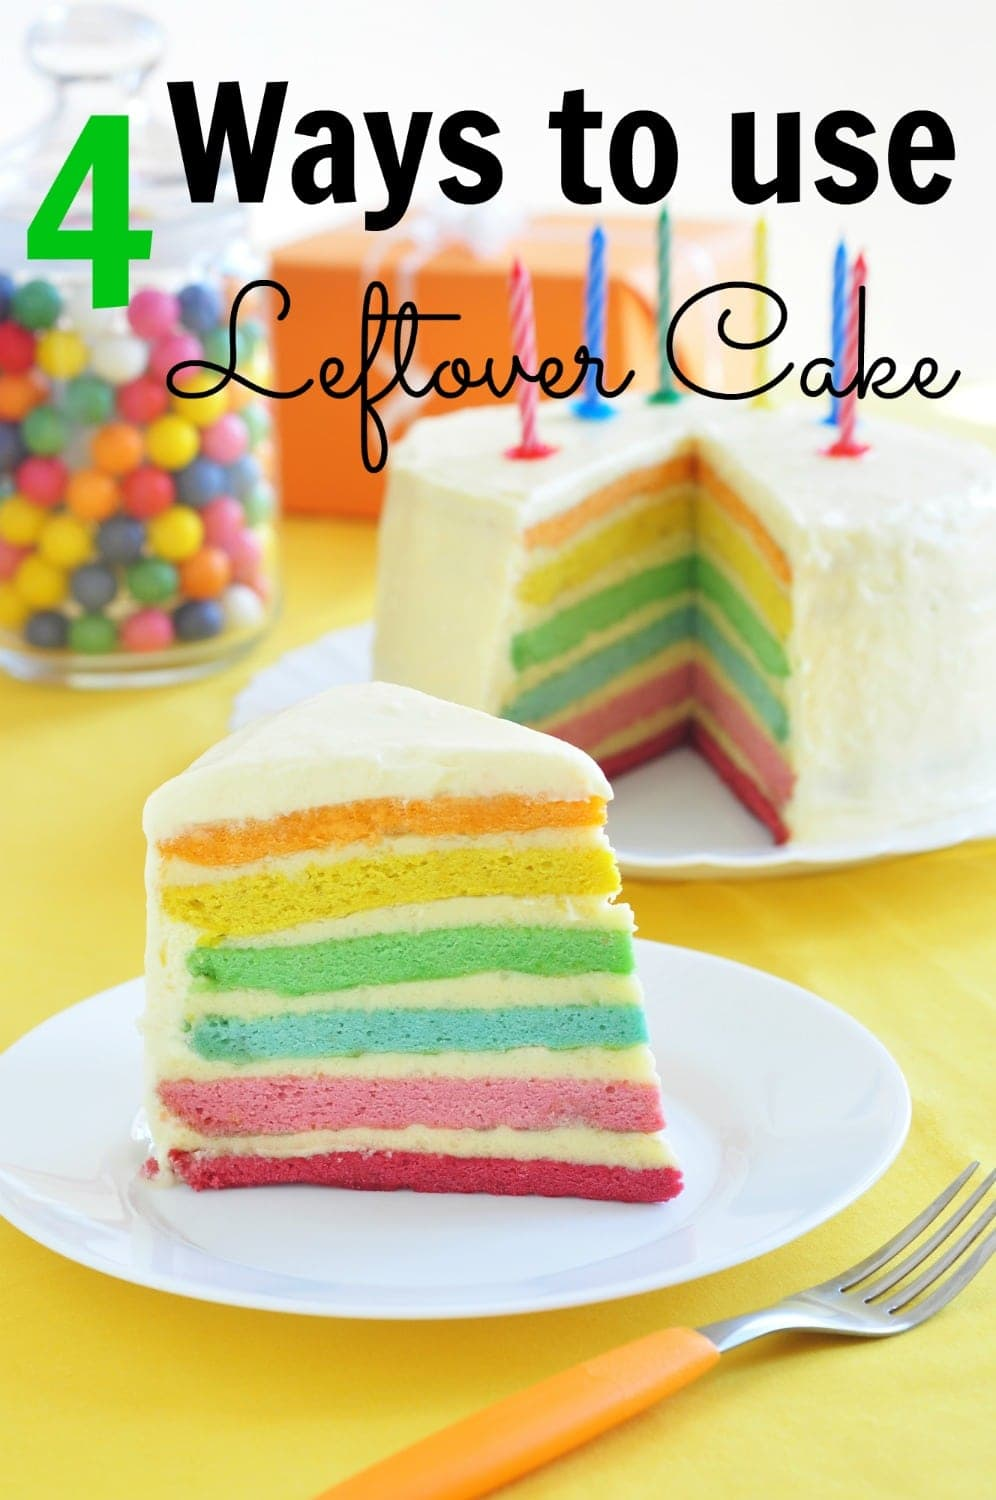 4 Ways to use Leftover Cake, these creative and simple ideas will turn your leftover birthday cake into delicious new desserts in no time!